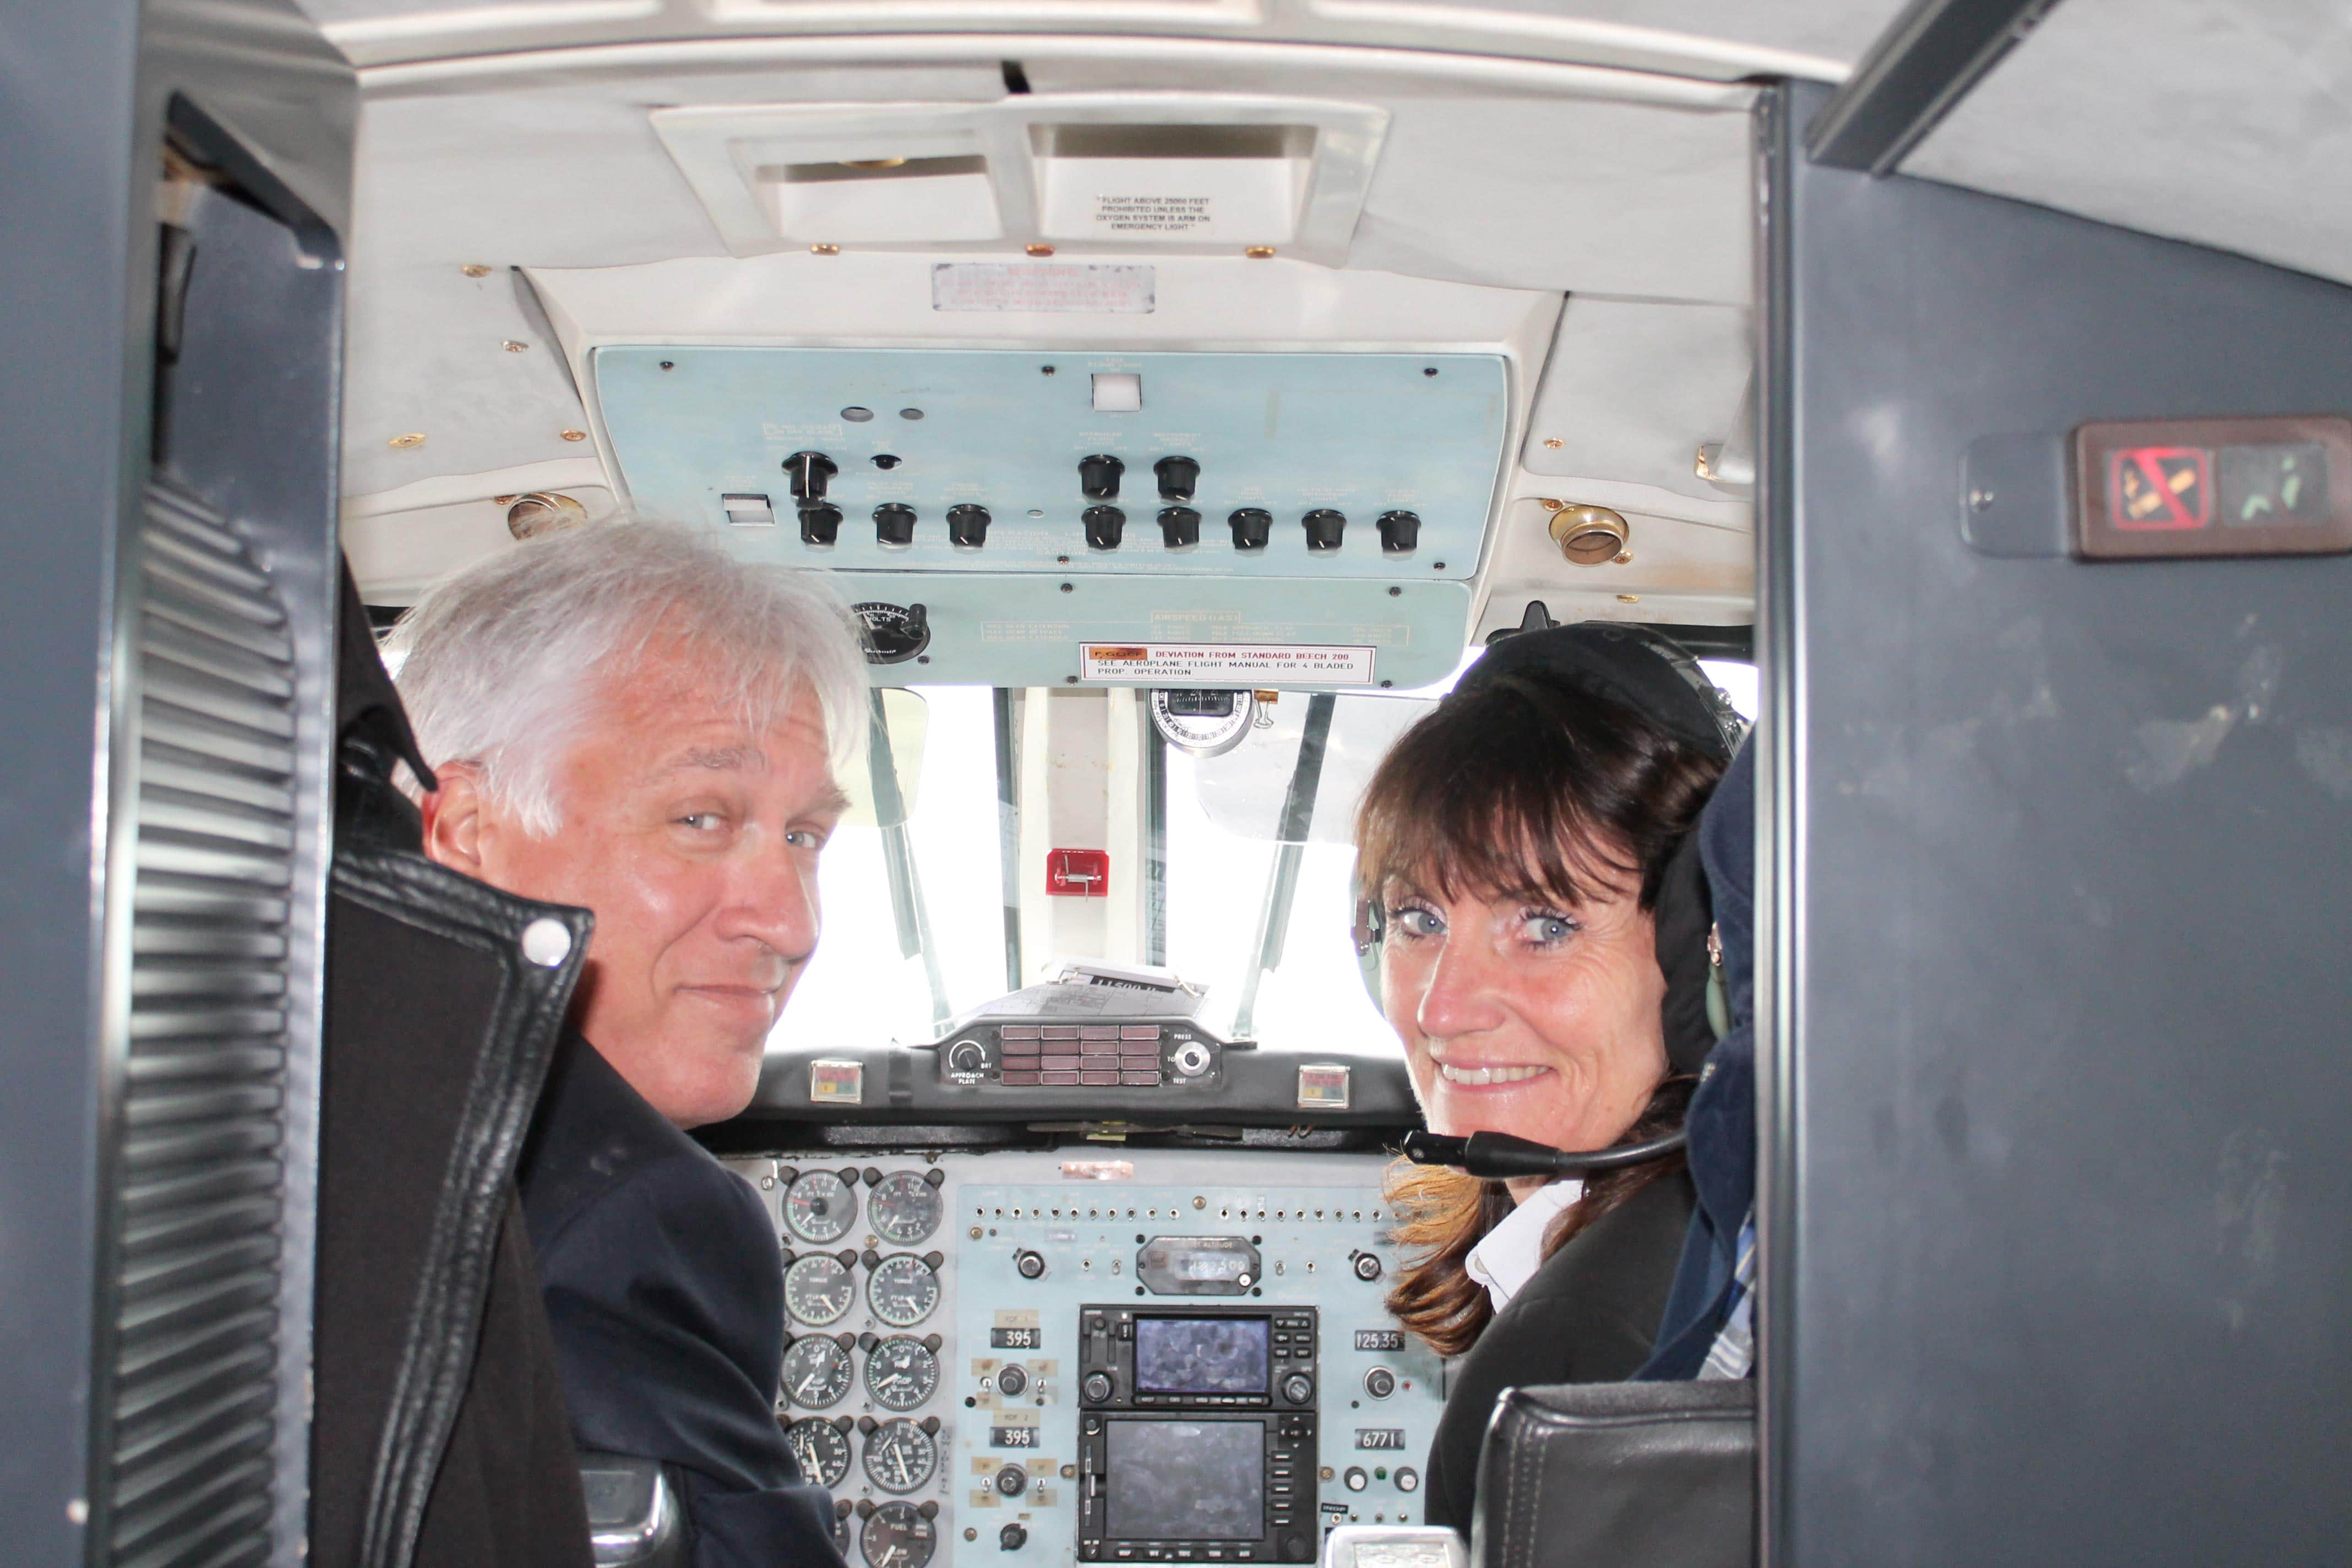 Corsica wine tour, pilot and co-pilot ready to fly